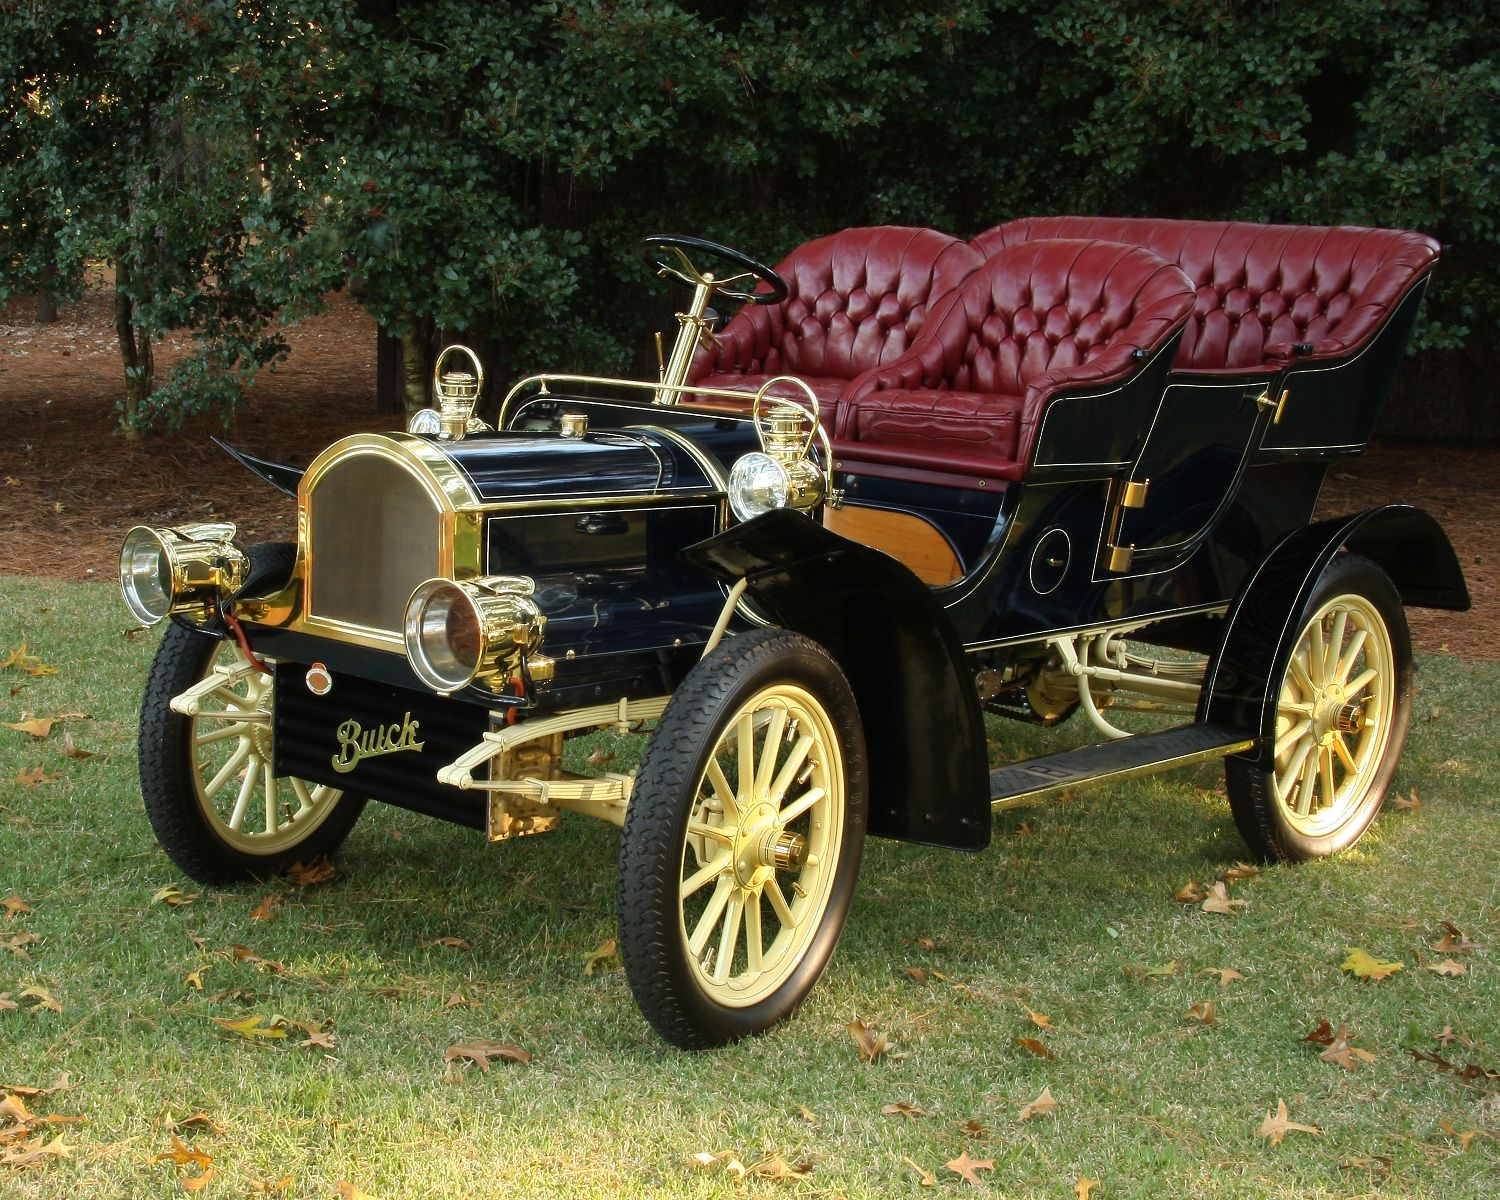 1905 Buick Model C: One of the earliest Buicks in existence, this ...